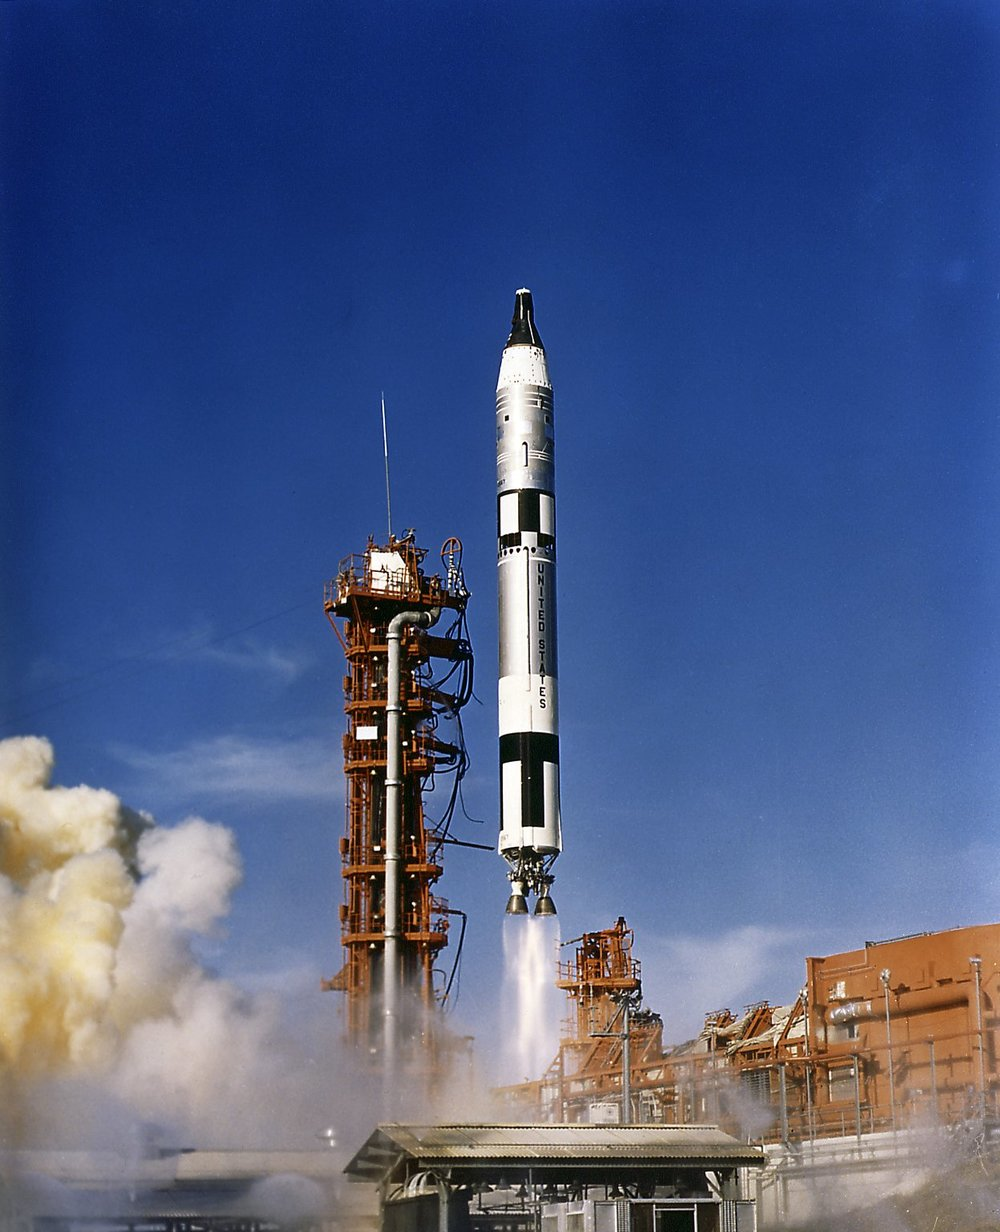 The Gemini 12 astronauts James Lovell and Edwin Aldrin lifted off aboard a Titan launch vehicle from the Kennedy Space Center on November 11, 1966.  1966